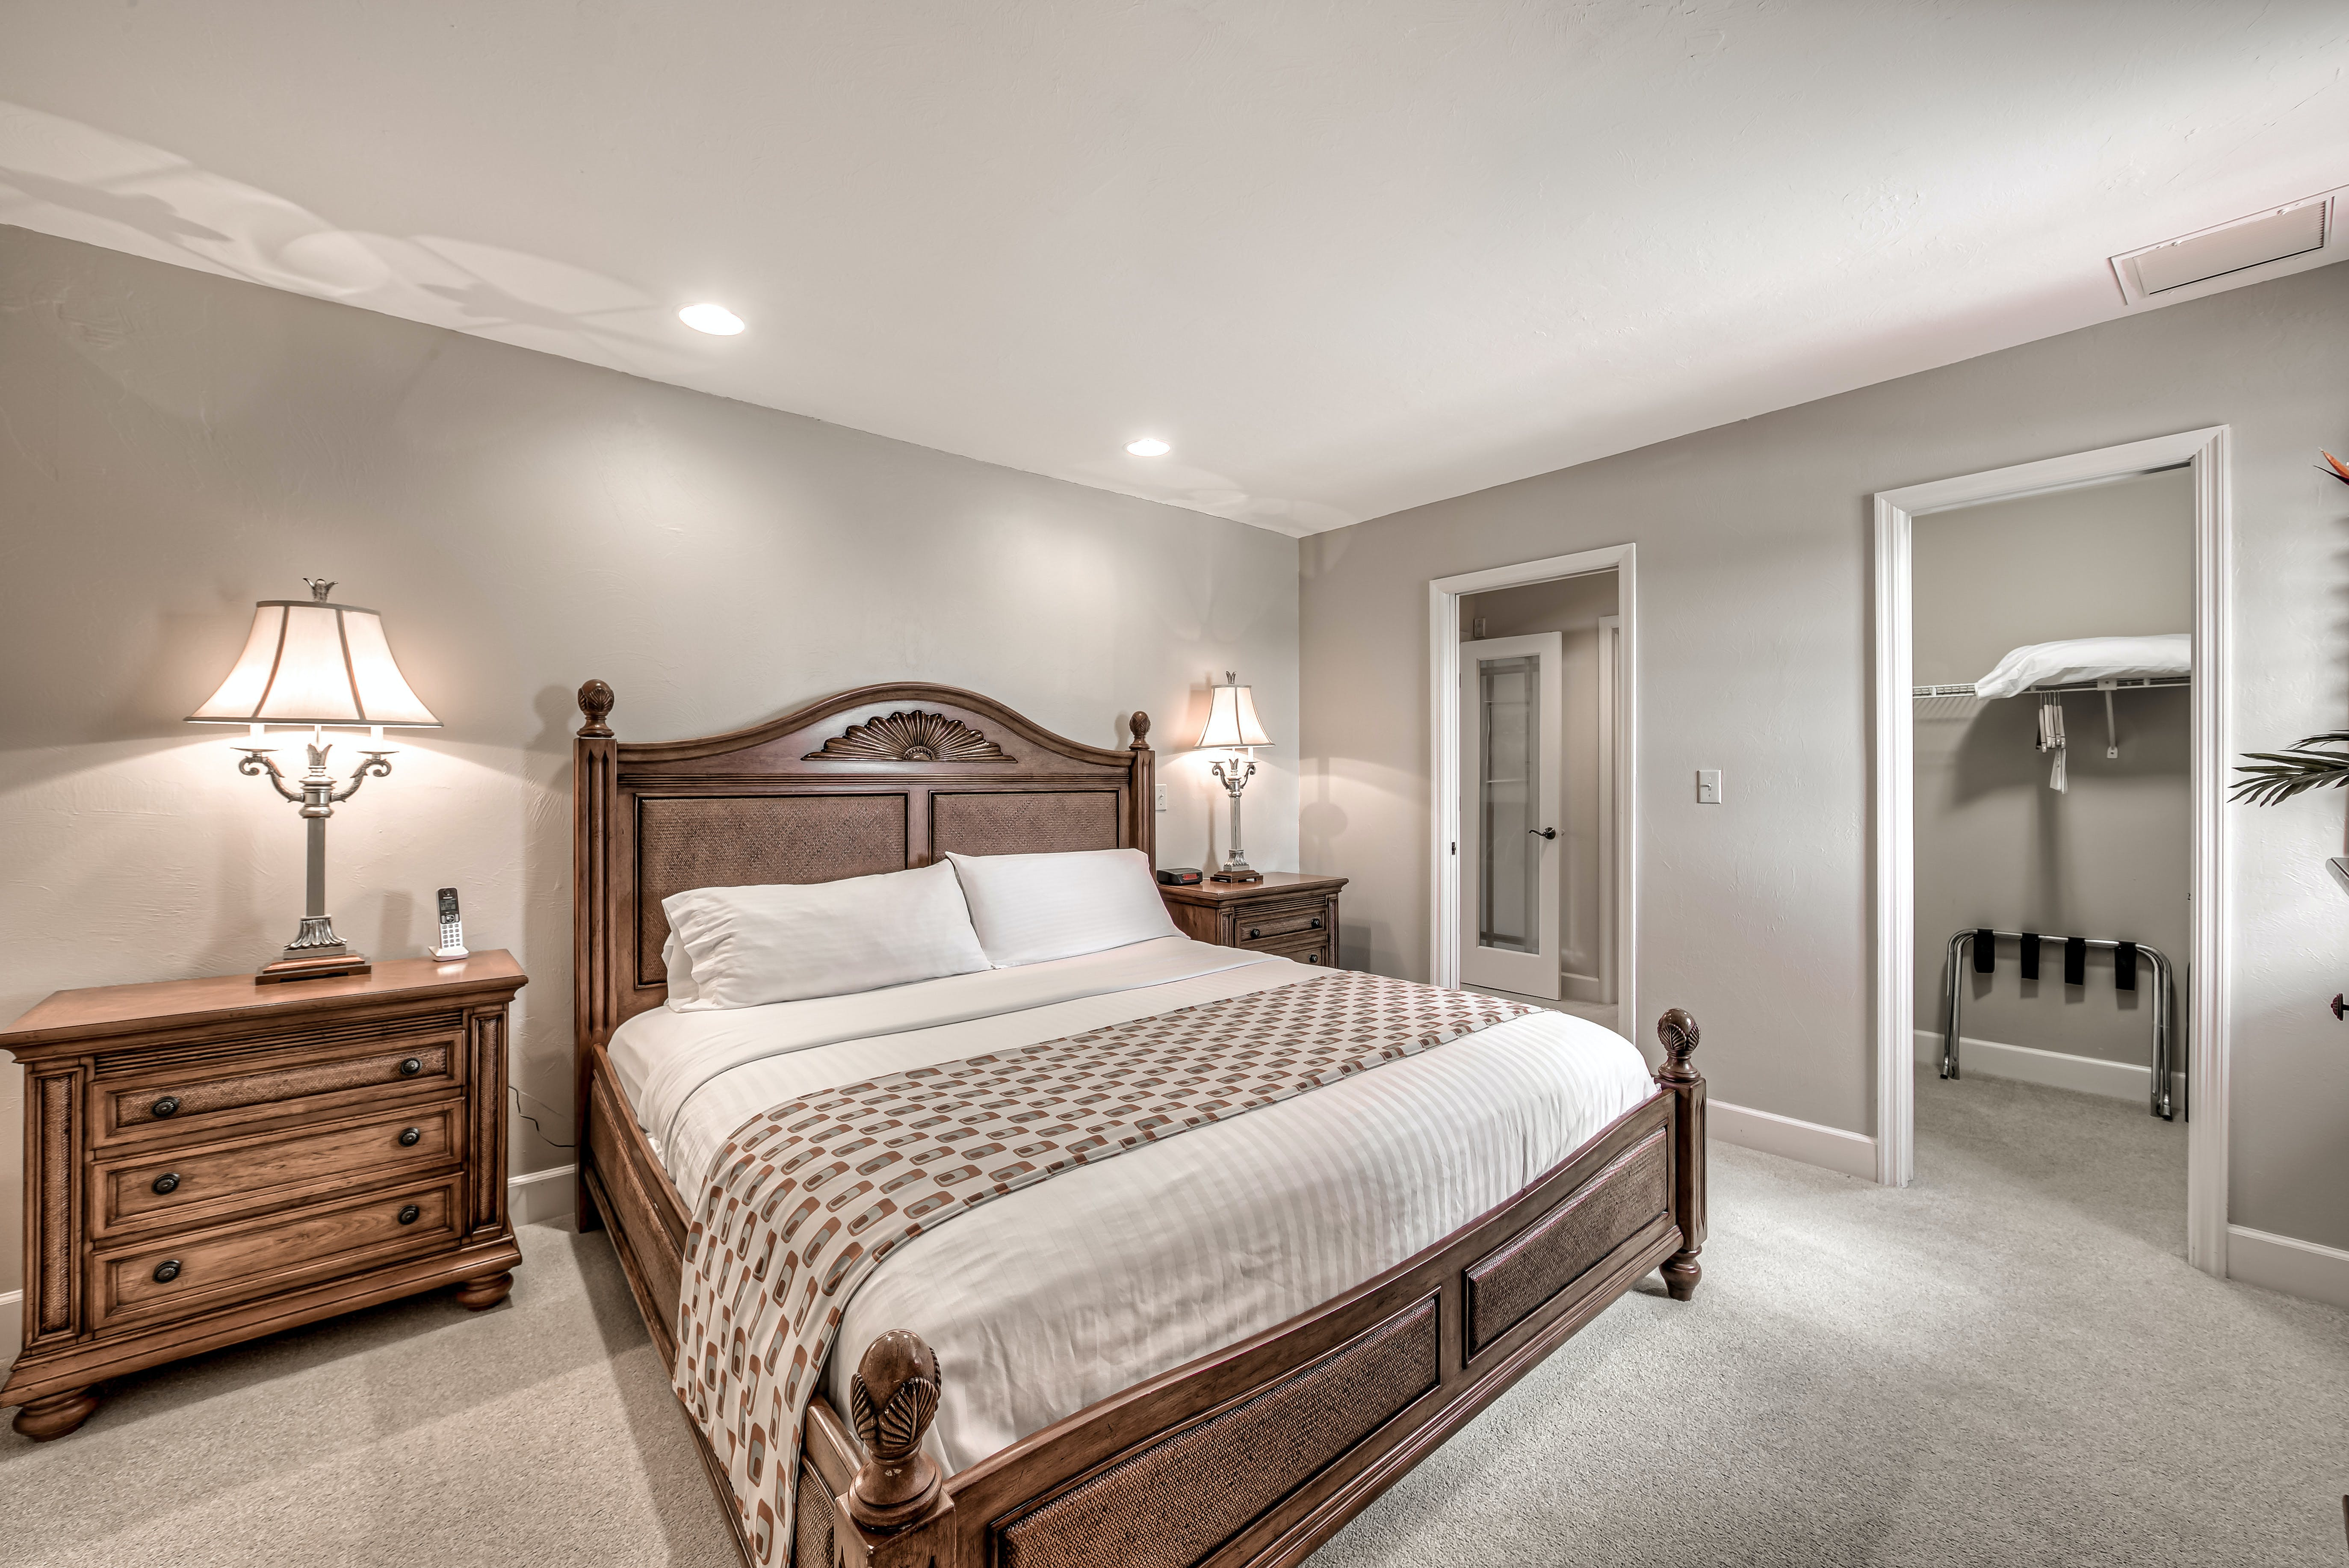 Two Bedroom Suite, master bedroom with king bed